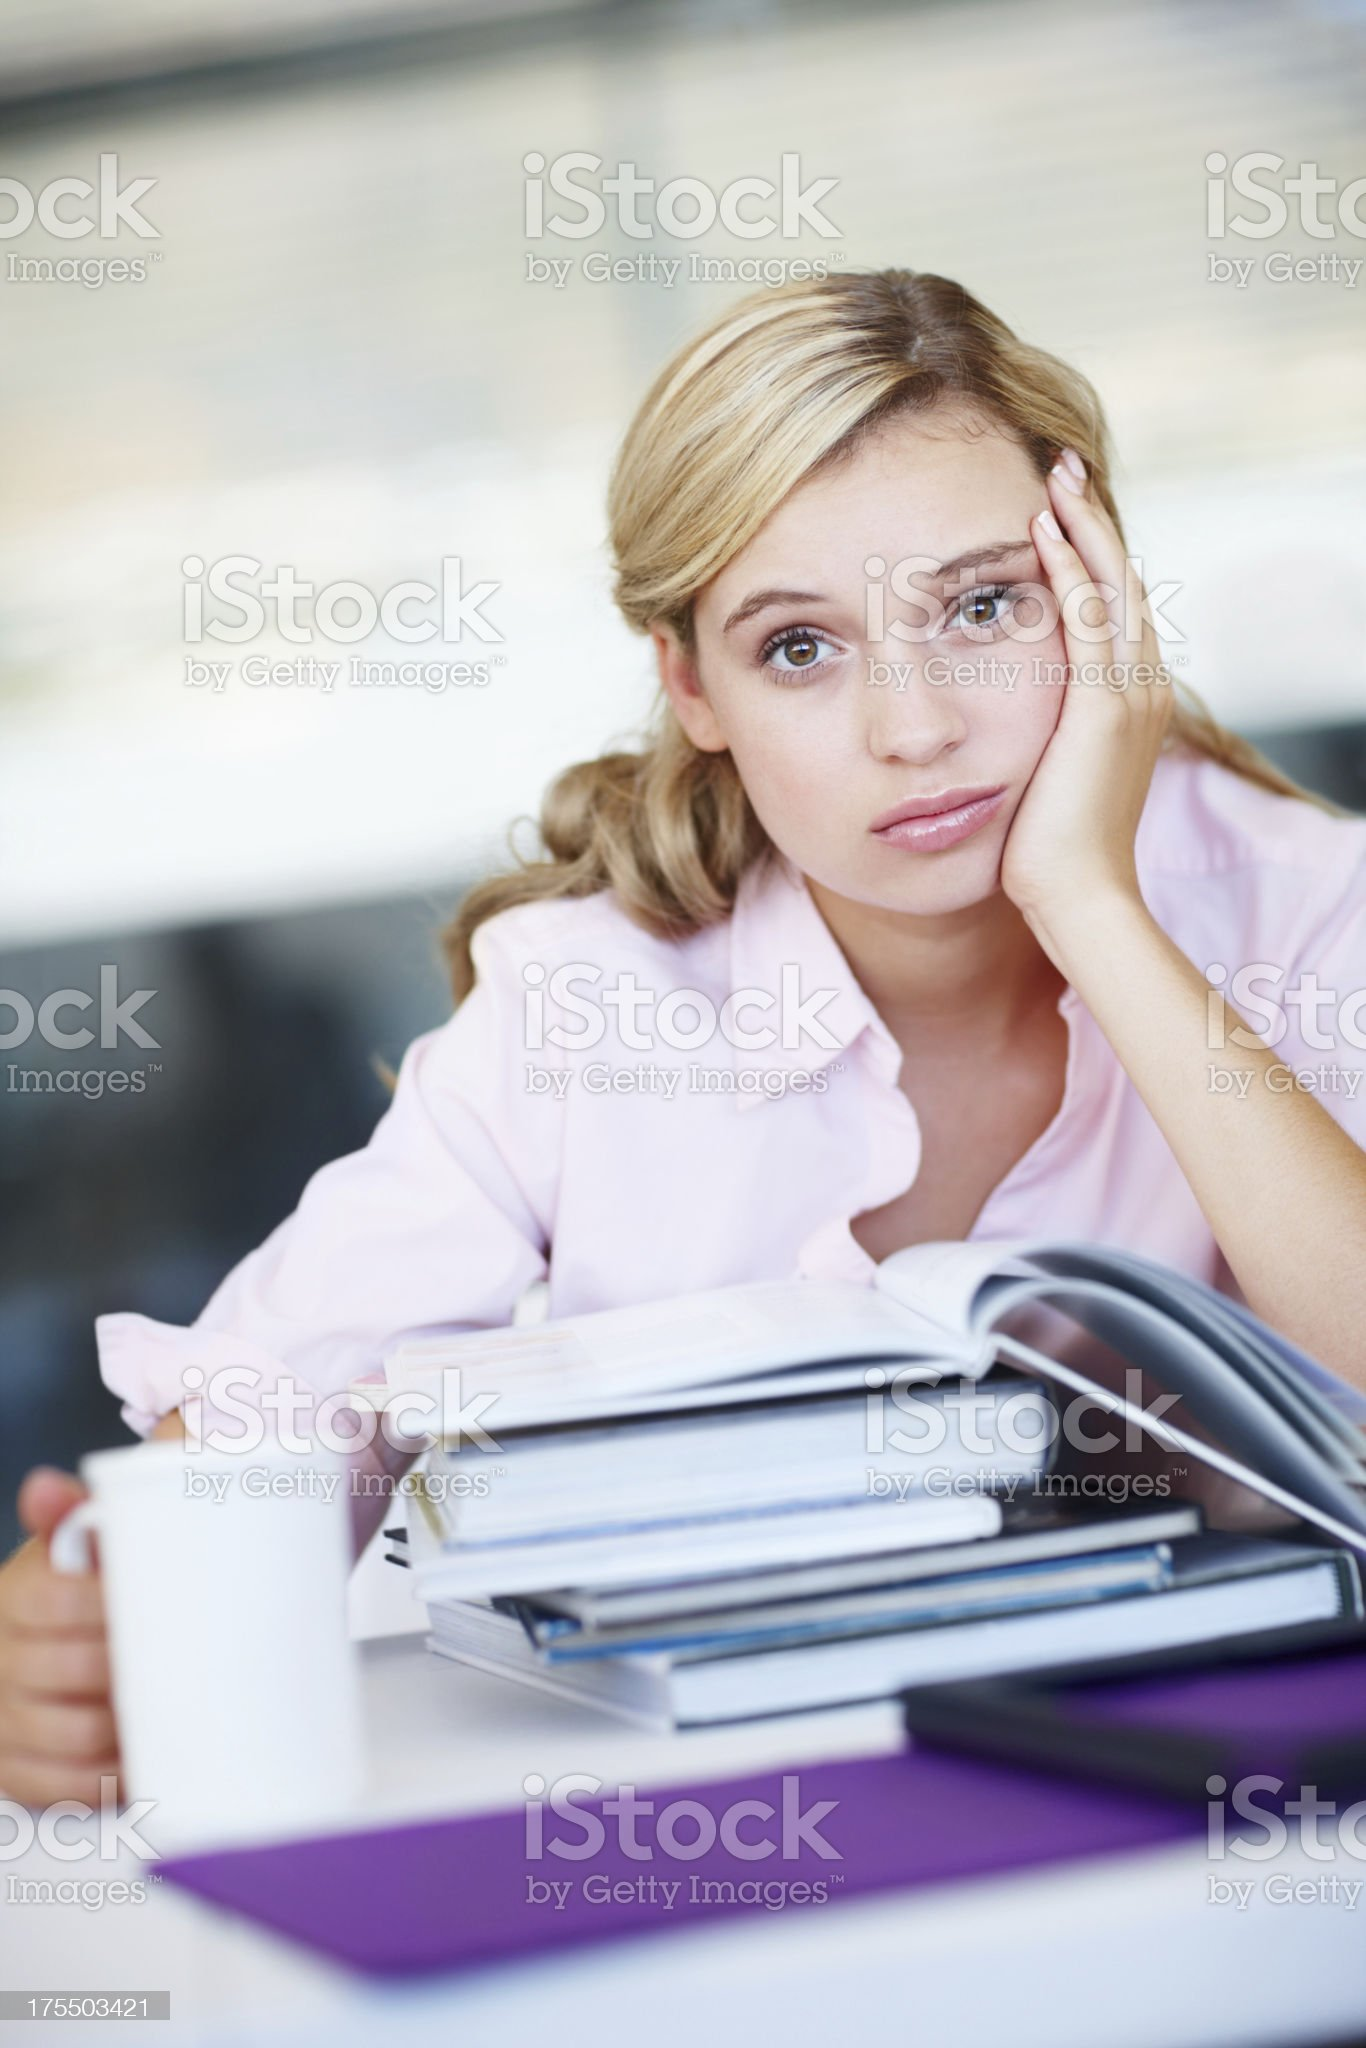 """I need to focus!"" royalty-free stock photo"